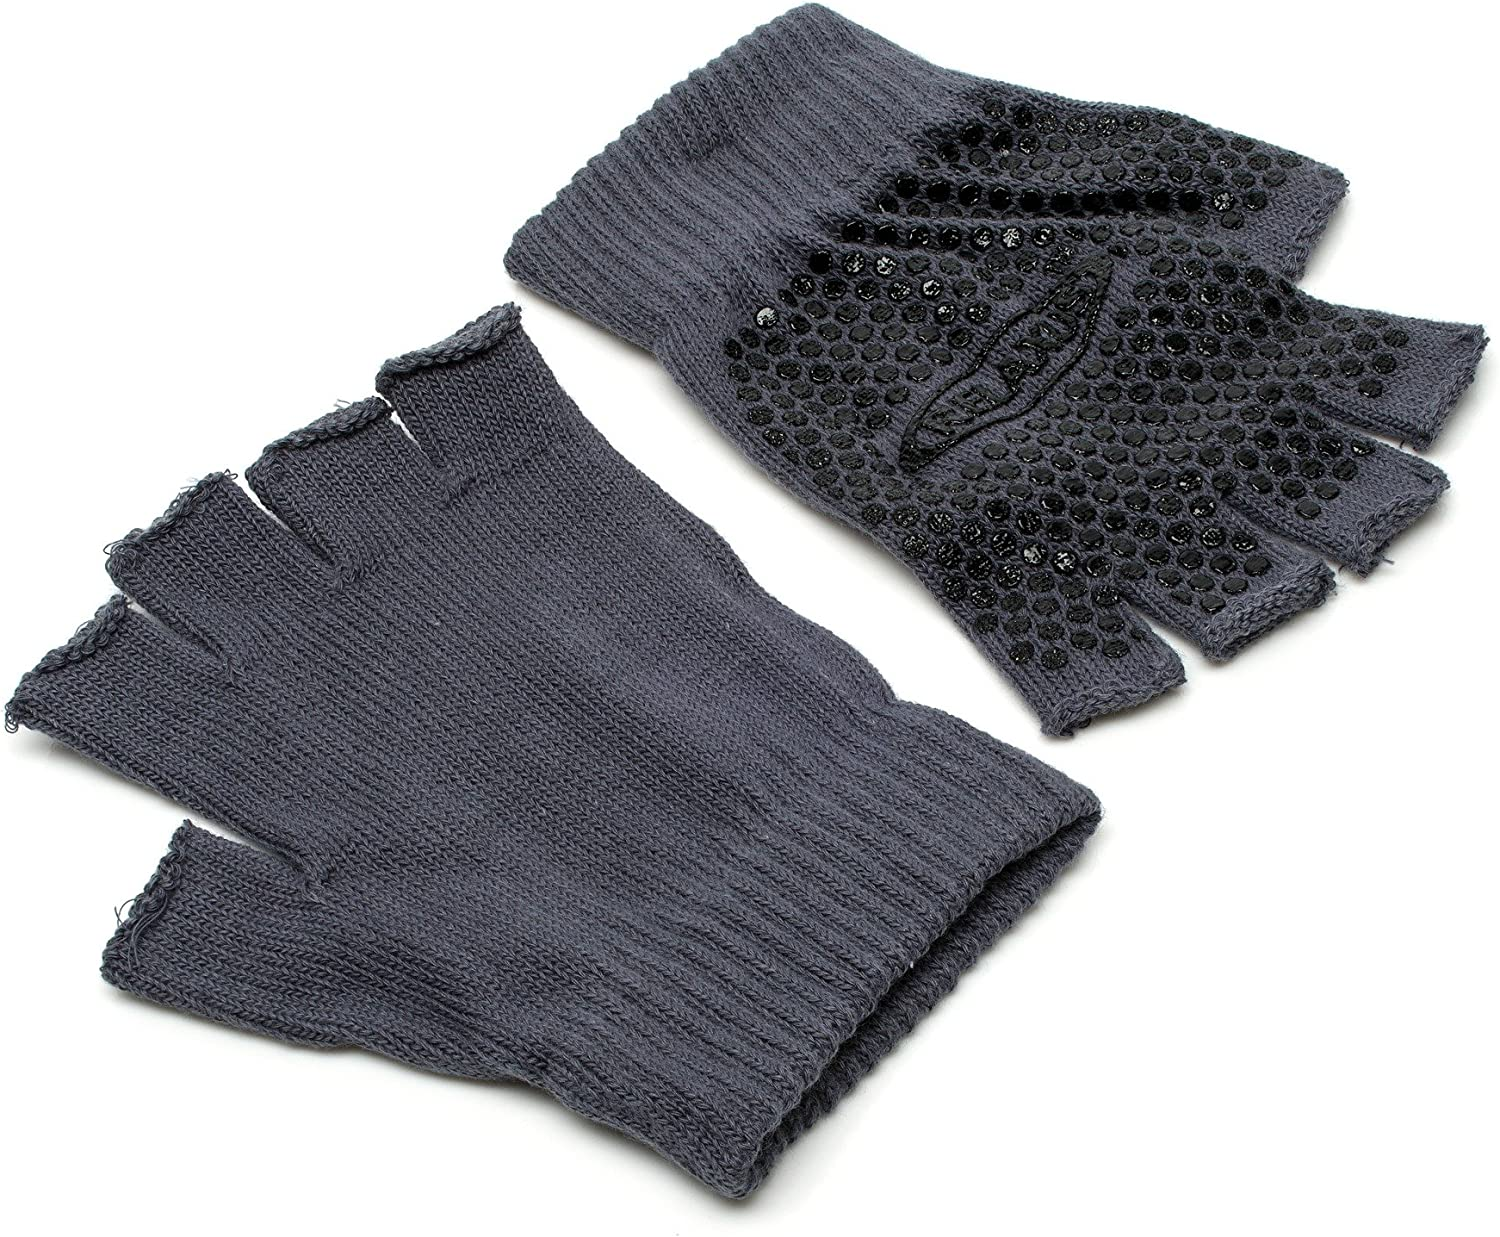 Non Slip Yoga Gloves with Grips